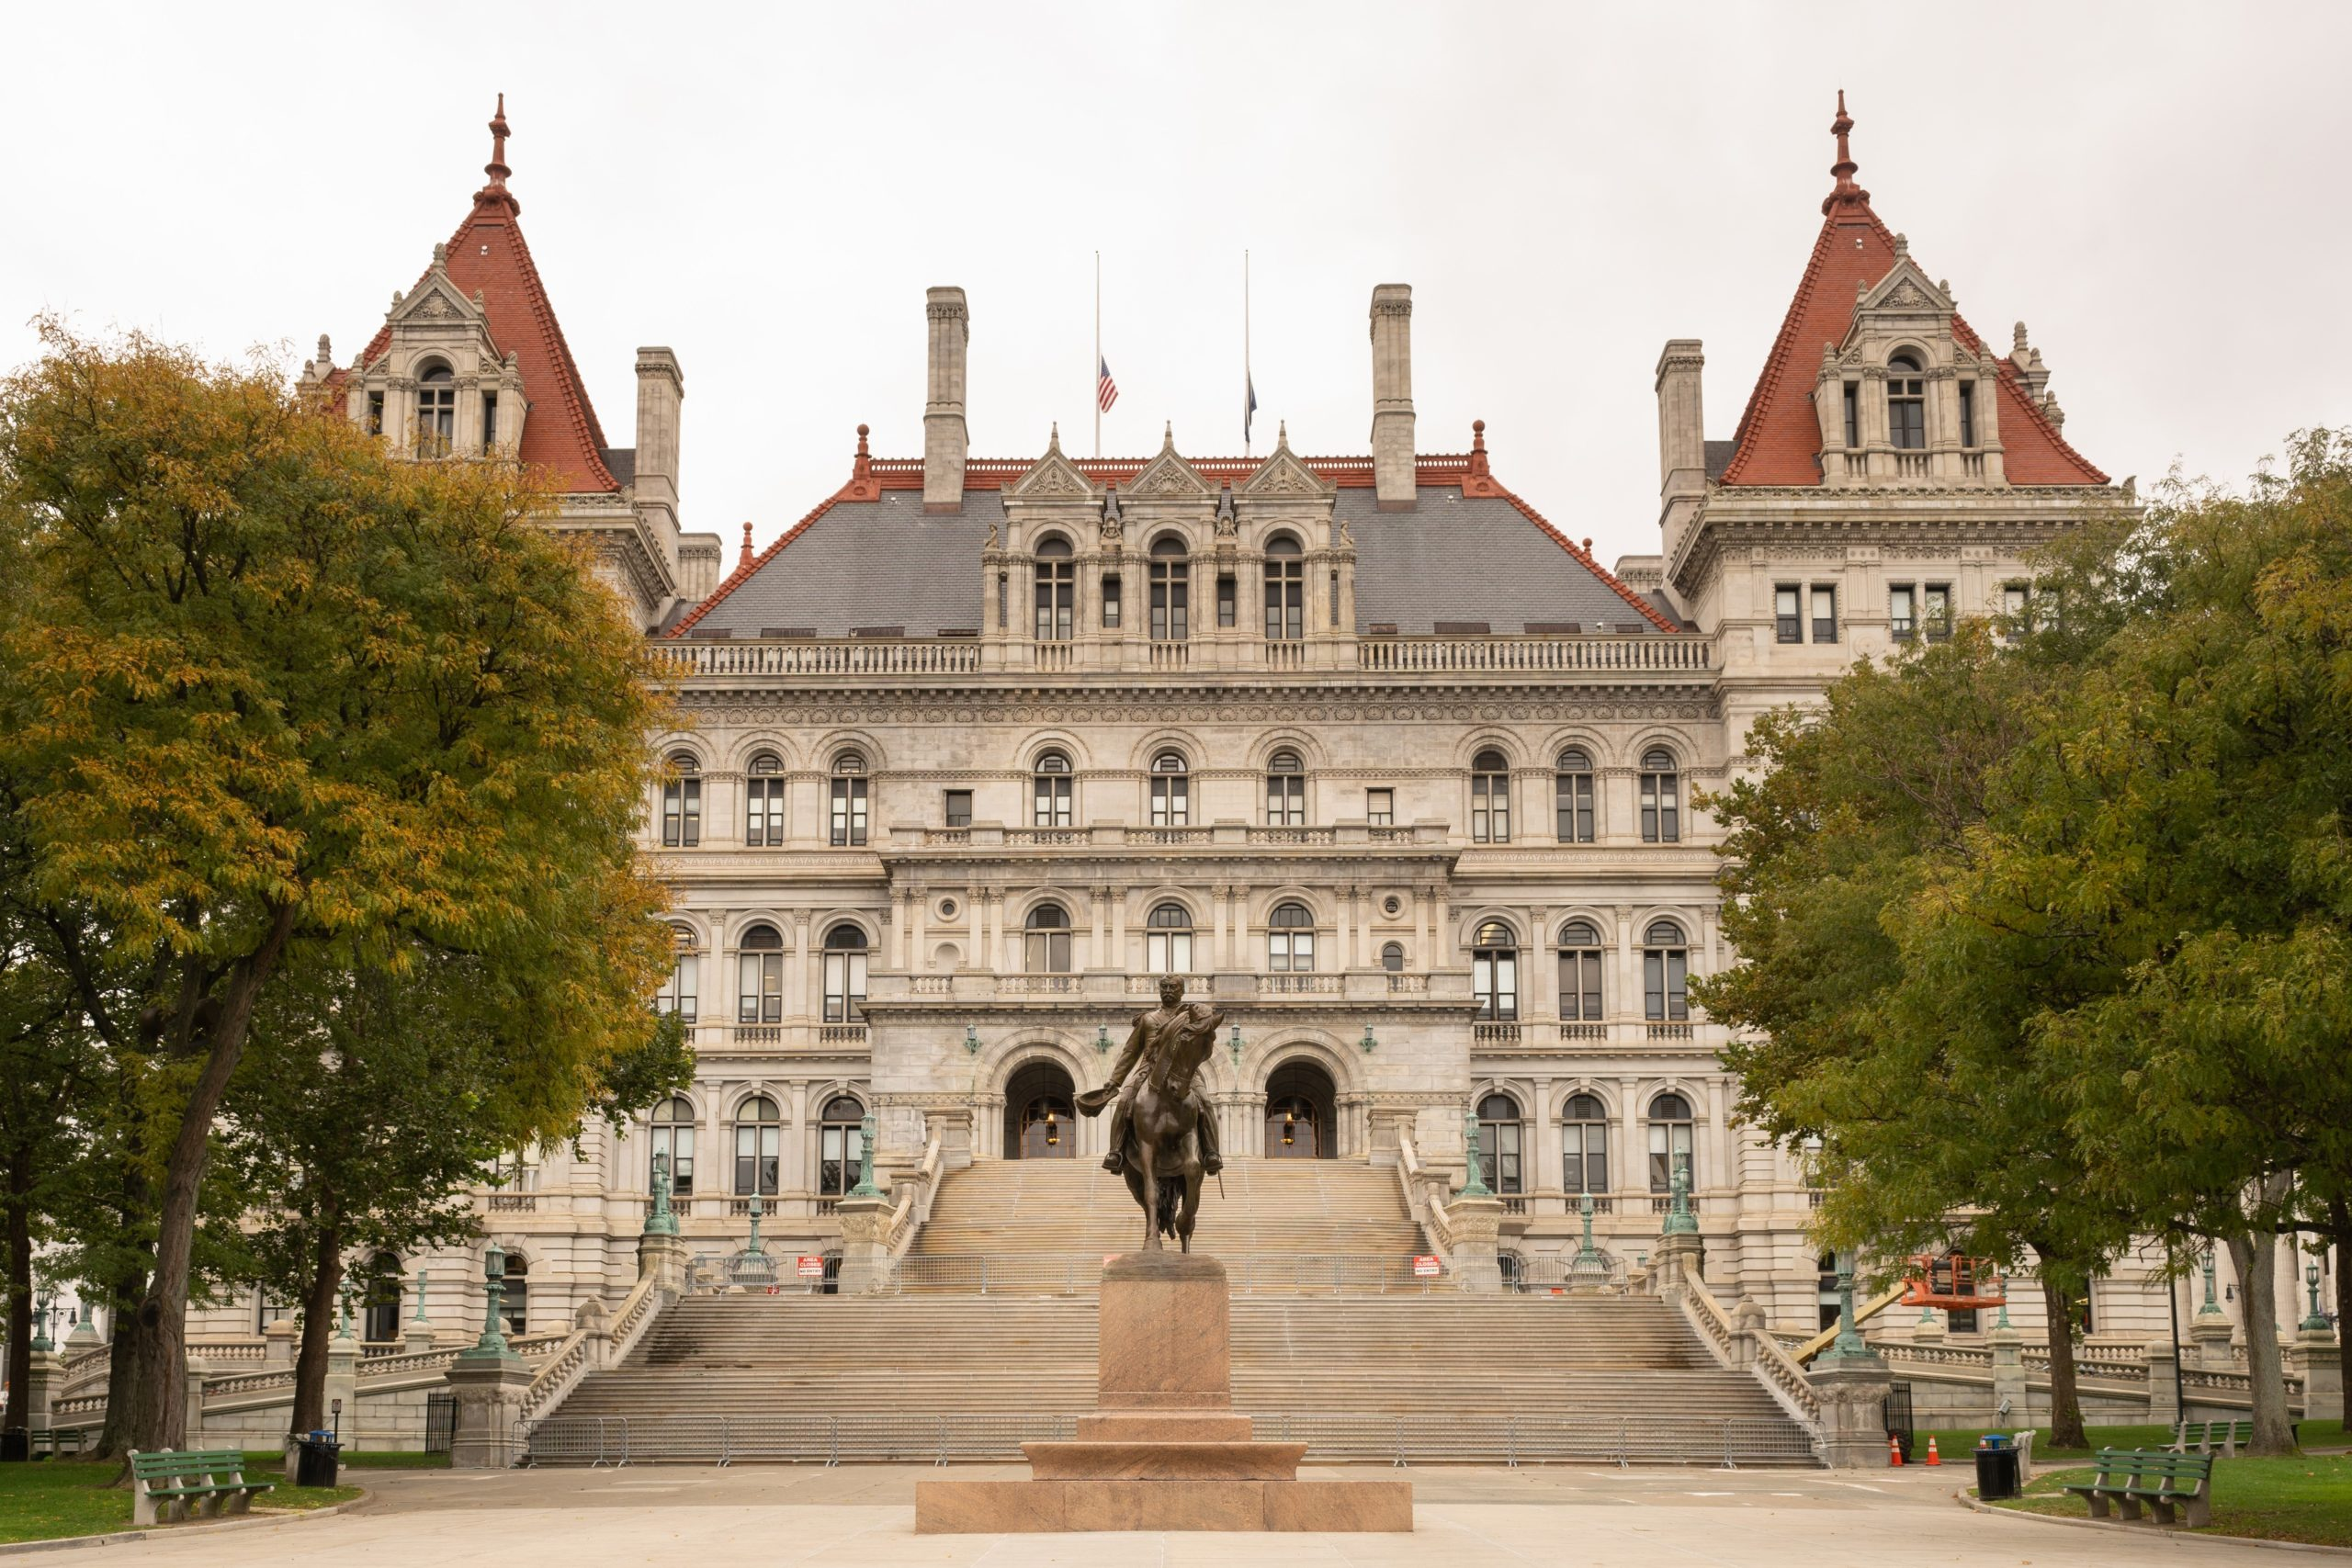 New York statehouse in Albany